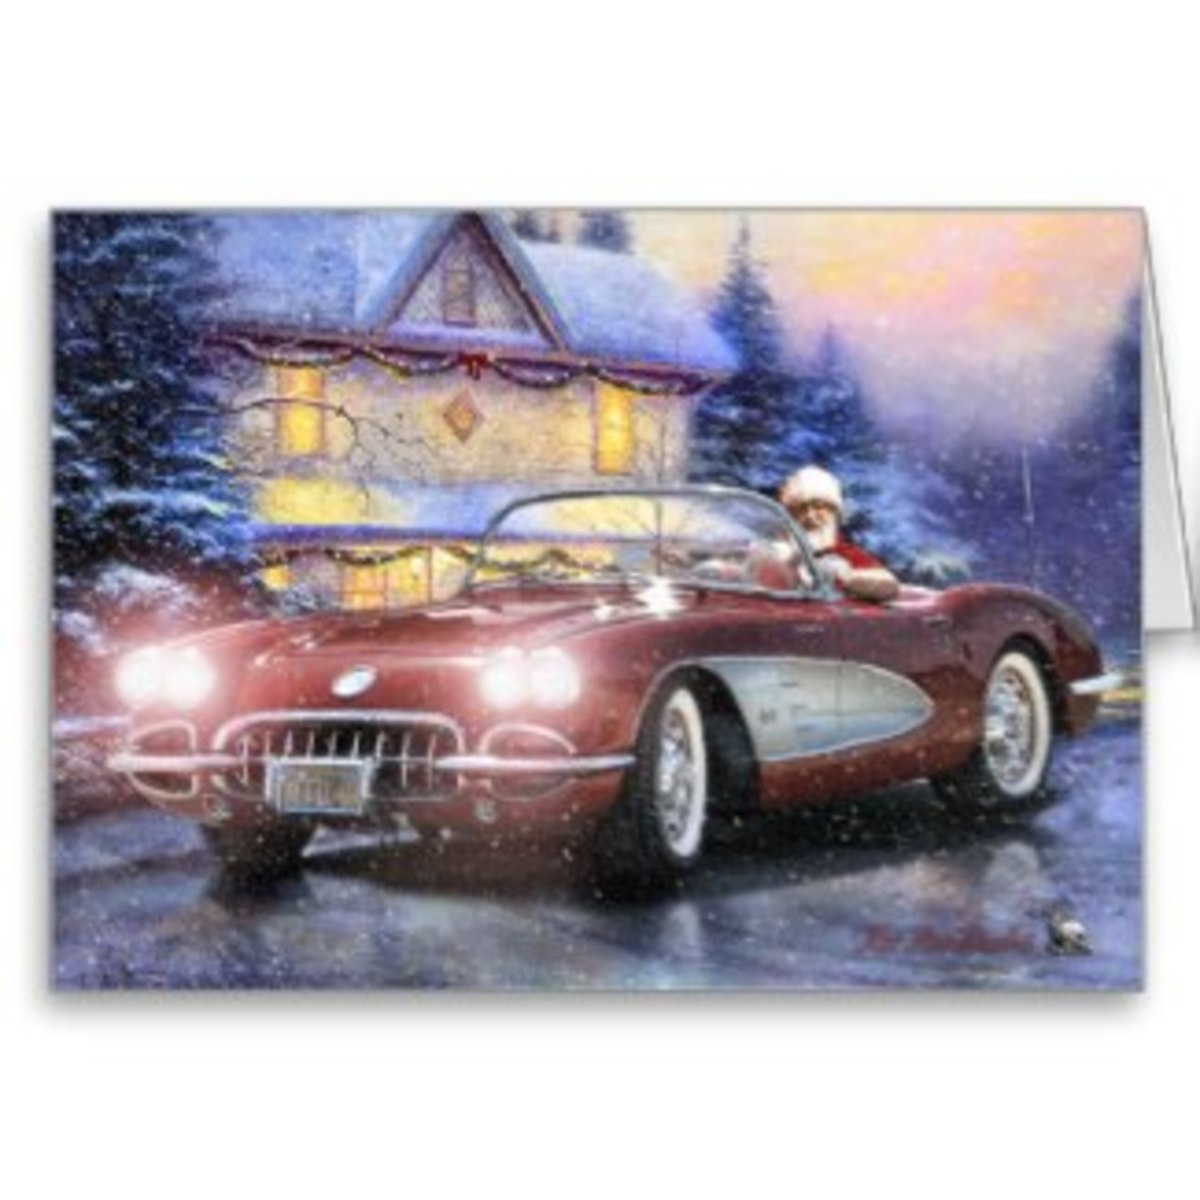 I wish Santa were bringing this Corvette to my house.